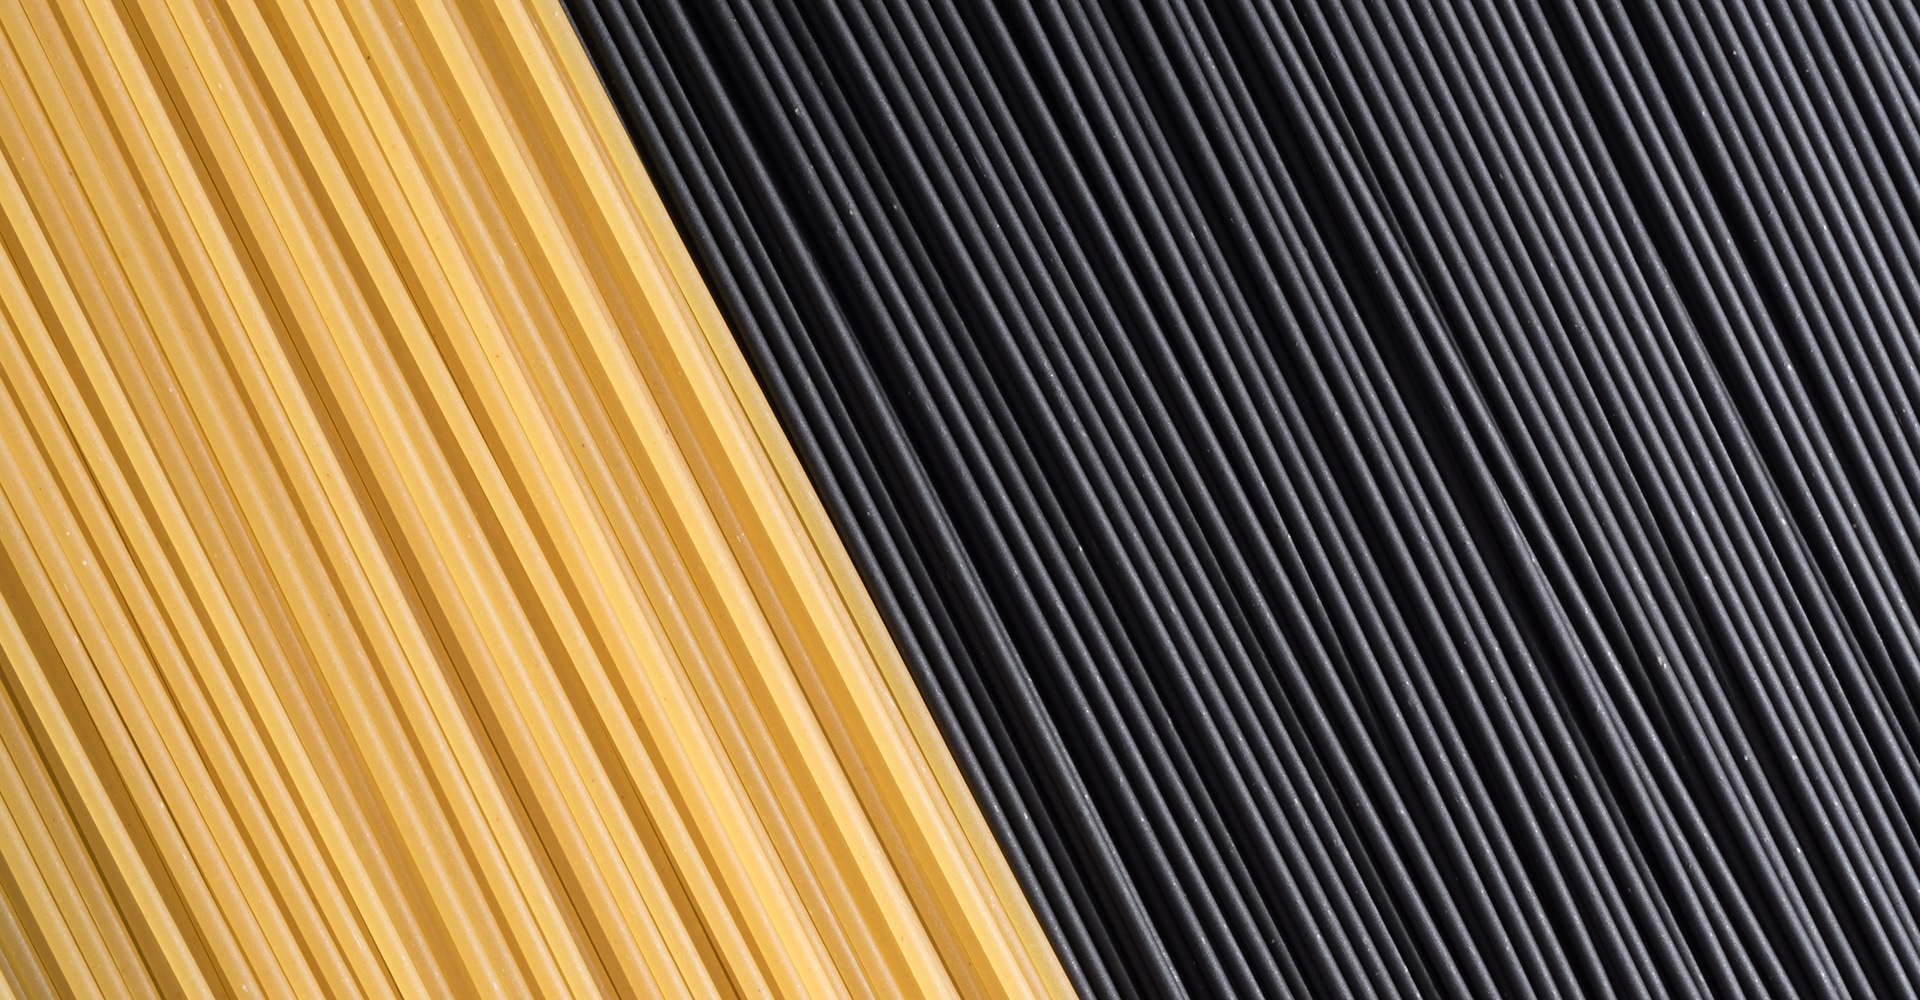 Uncooked Squid ink Spaghetti and Yellow Spaghetti Full Frame Shot, Directly Above View.